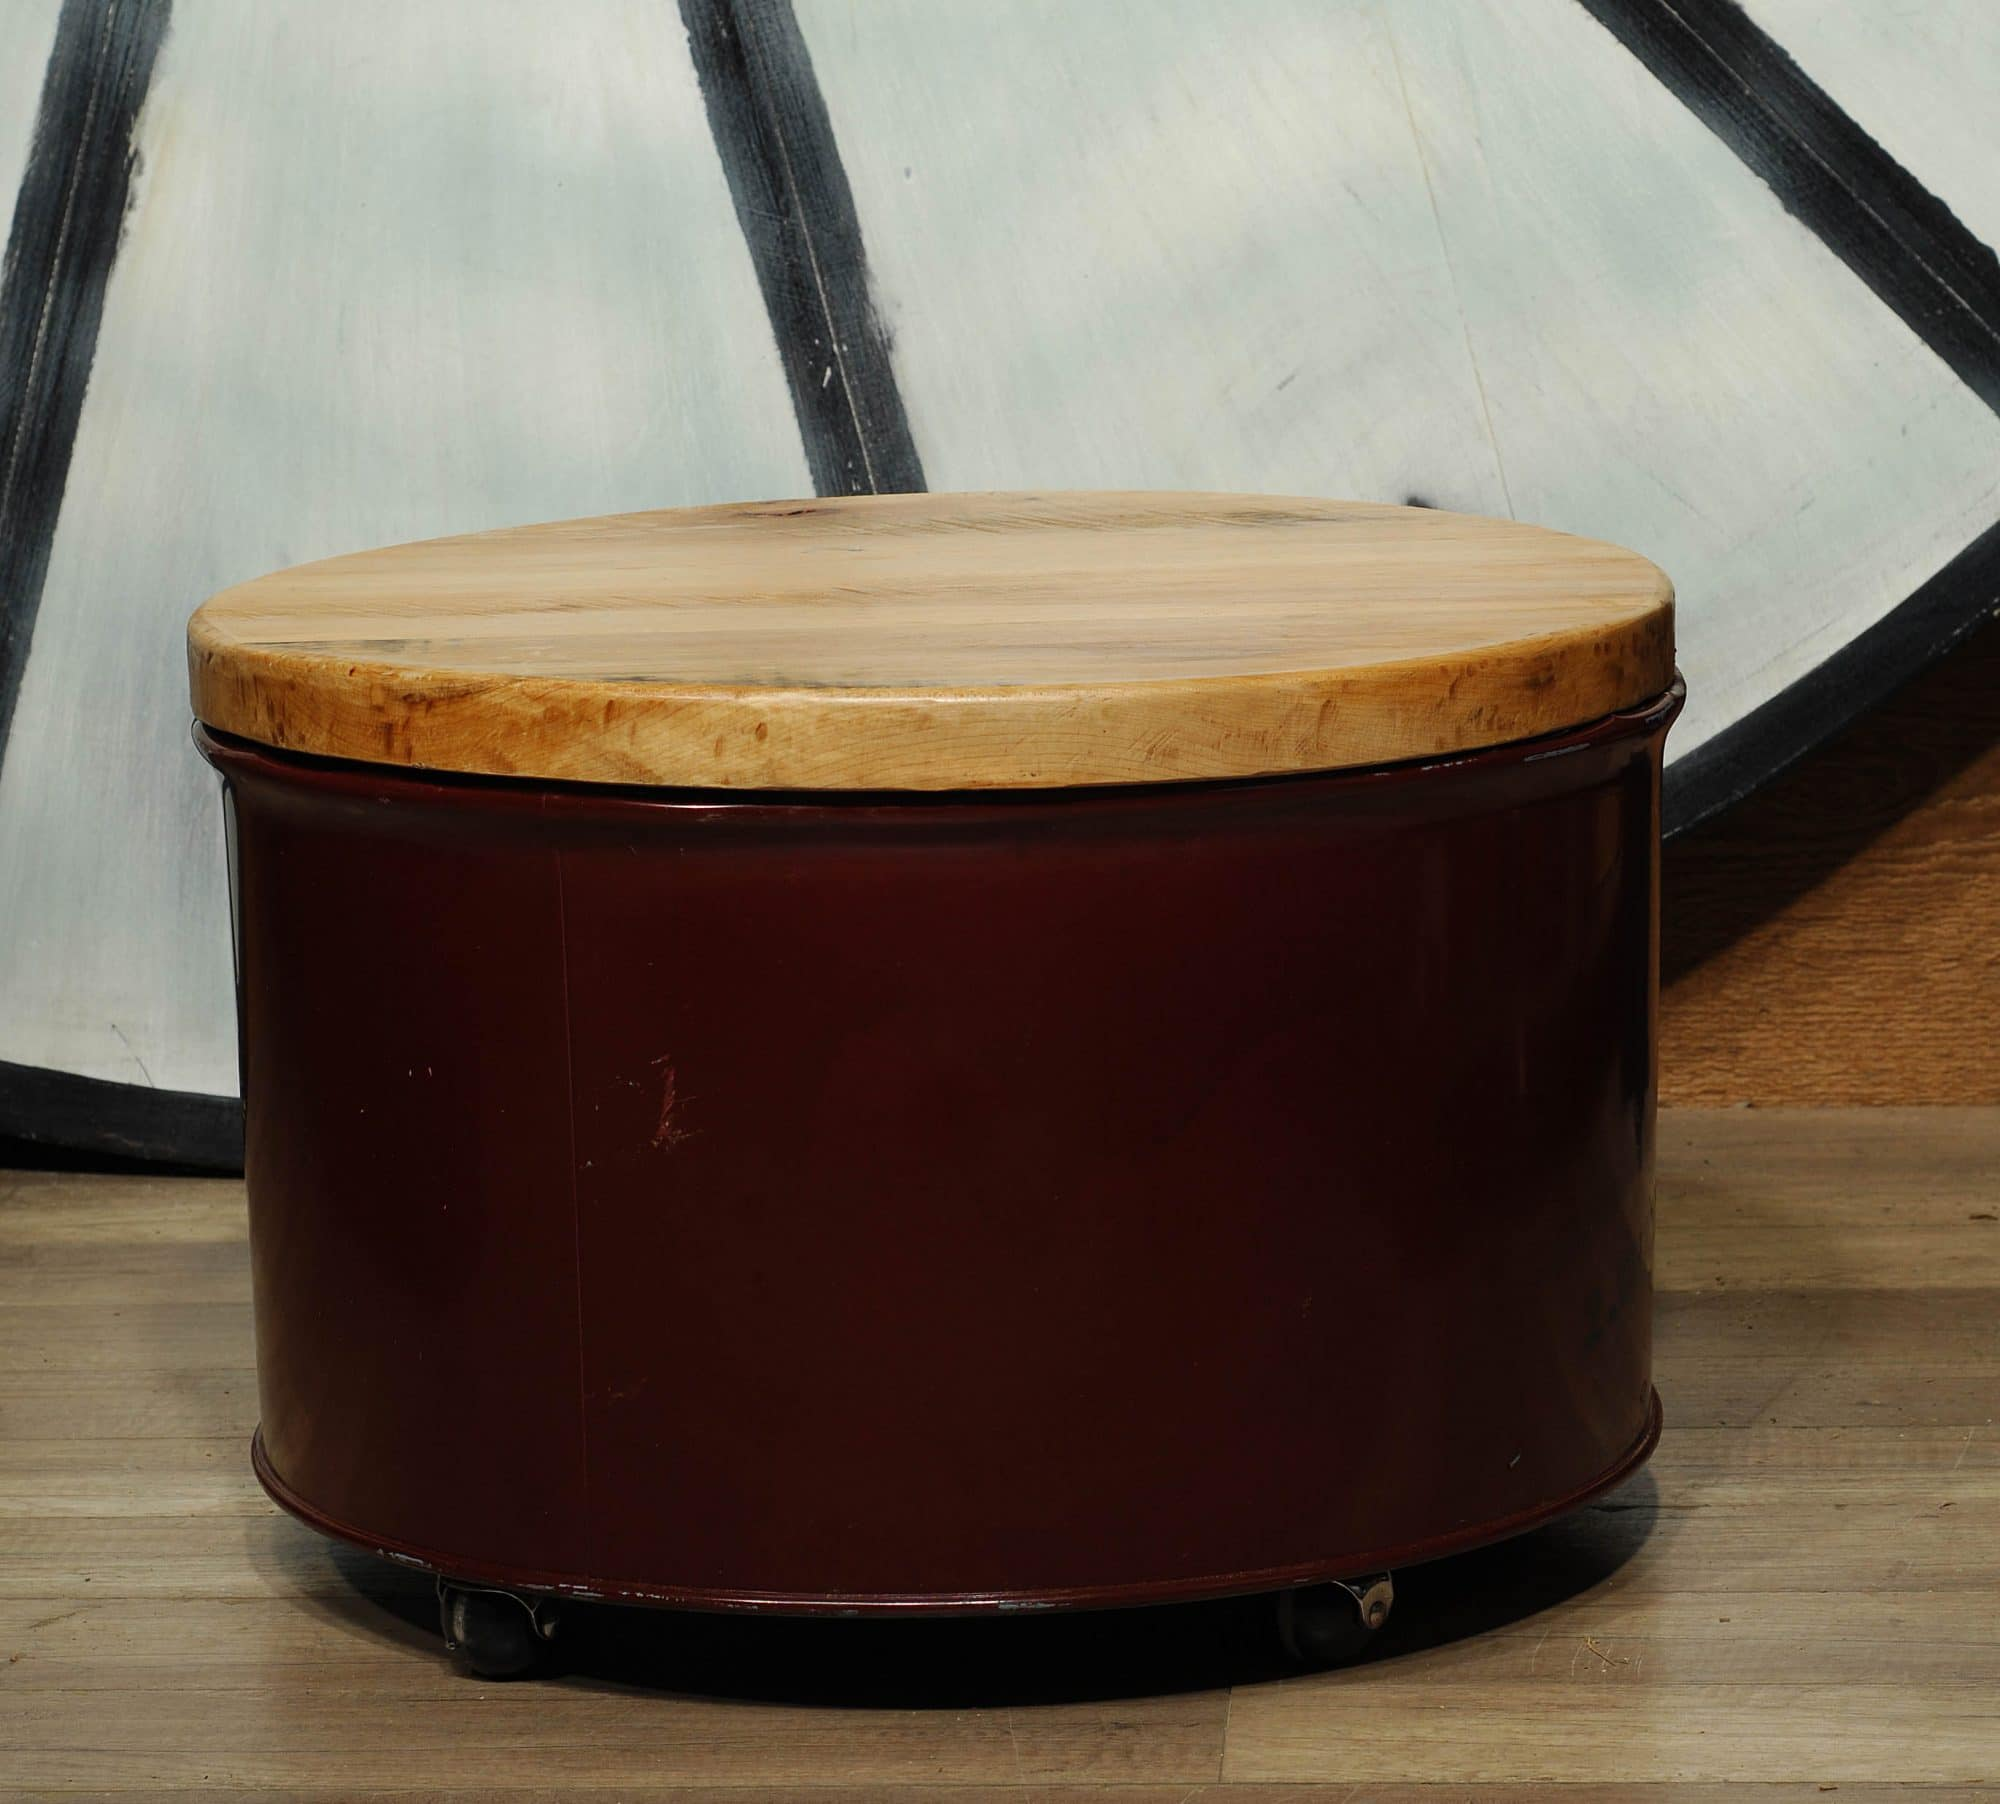 Table Baril petite table ronde sur roulette baril /small round table from baril